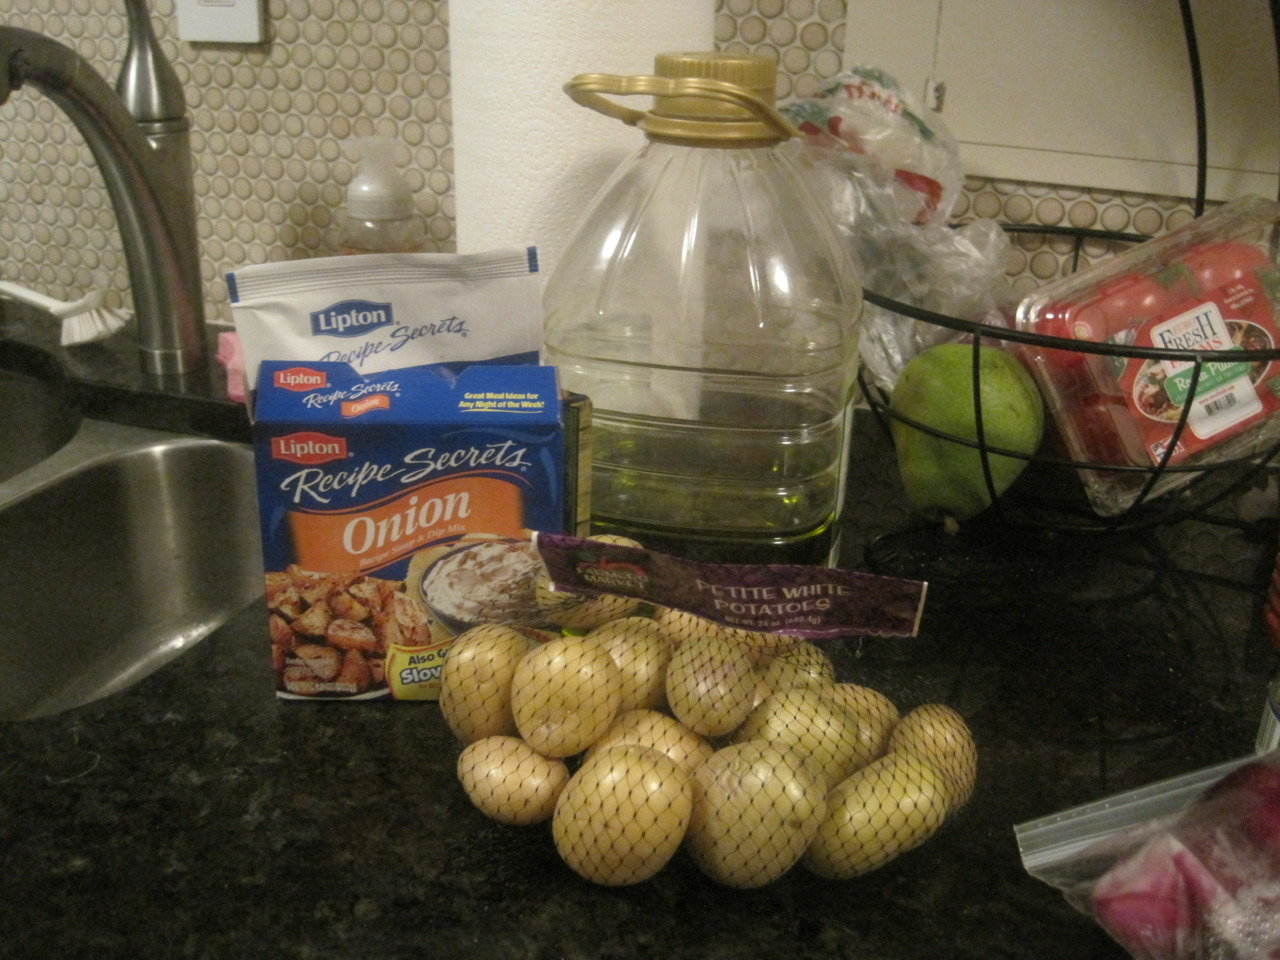 Lipton's Onion Potatoes This is the easier recipe EVER and creates amazing potatoes. It's my go to recipe. So did you know you can make delicious potatoes with that little packet of onion soup mix? I did!!! Enjoy! INGREDIENTS  1 envelope Lipton® Recipe Secrets® Onion Soup Mix 1 bag of small potatoes 1/3 cup vegetable oil  DIRECTIONS Preheat oven to 425°. Combine all ingredients in a gallon ziploc bag Mix together and pour onto foil covered baking sheet Bake, stirring occasionally, 35 minutes or until potatoes are tender and golden brown.